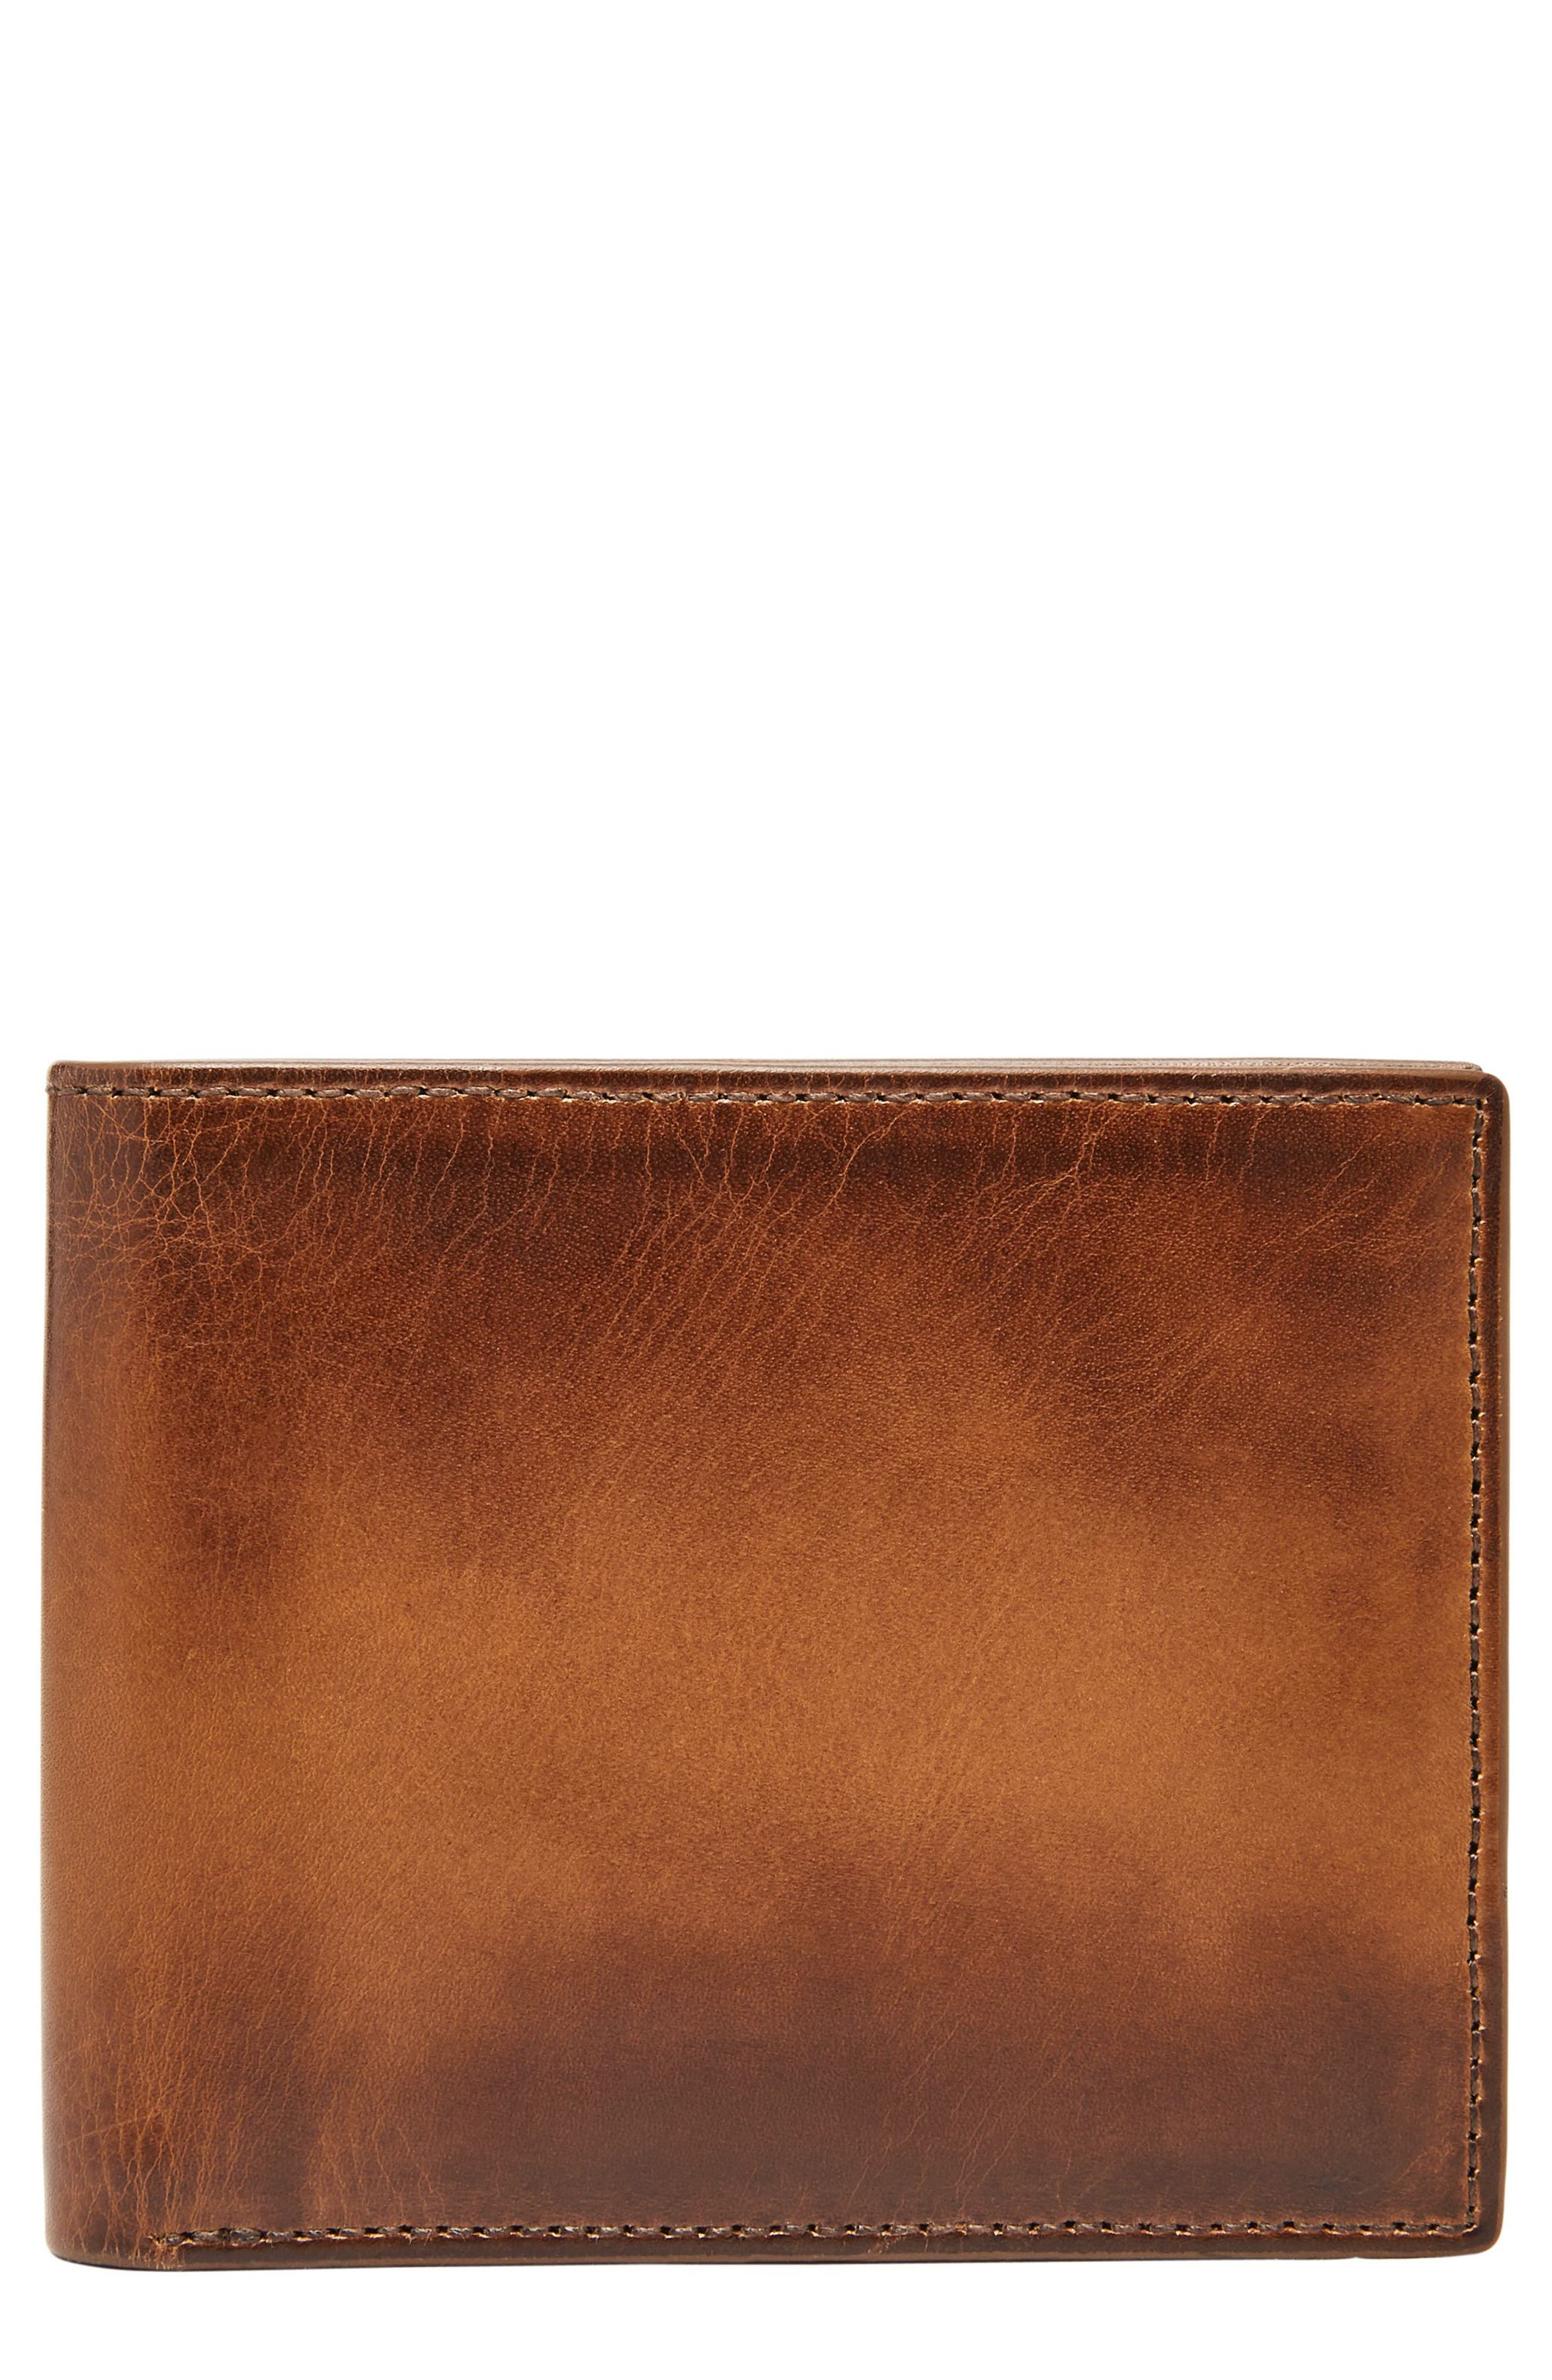 Main Image - Fossil Paul Leather Wallet